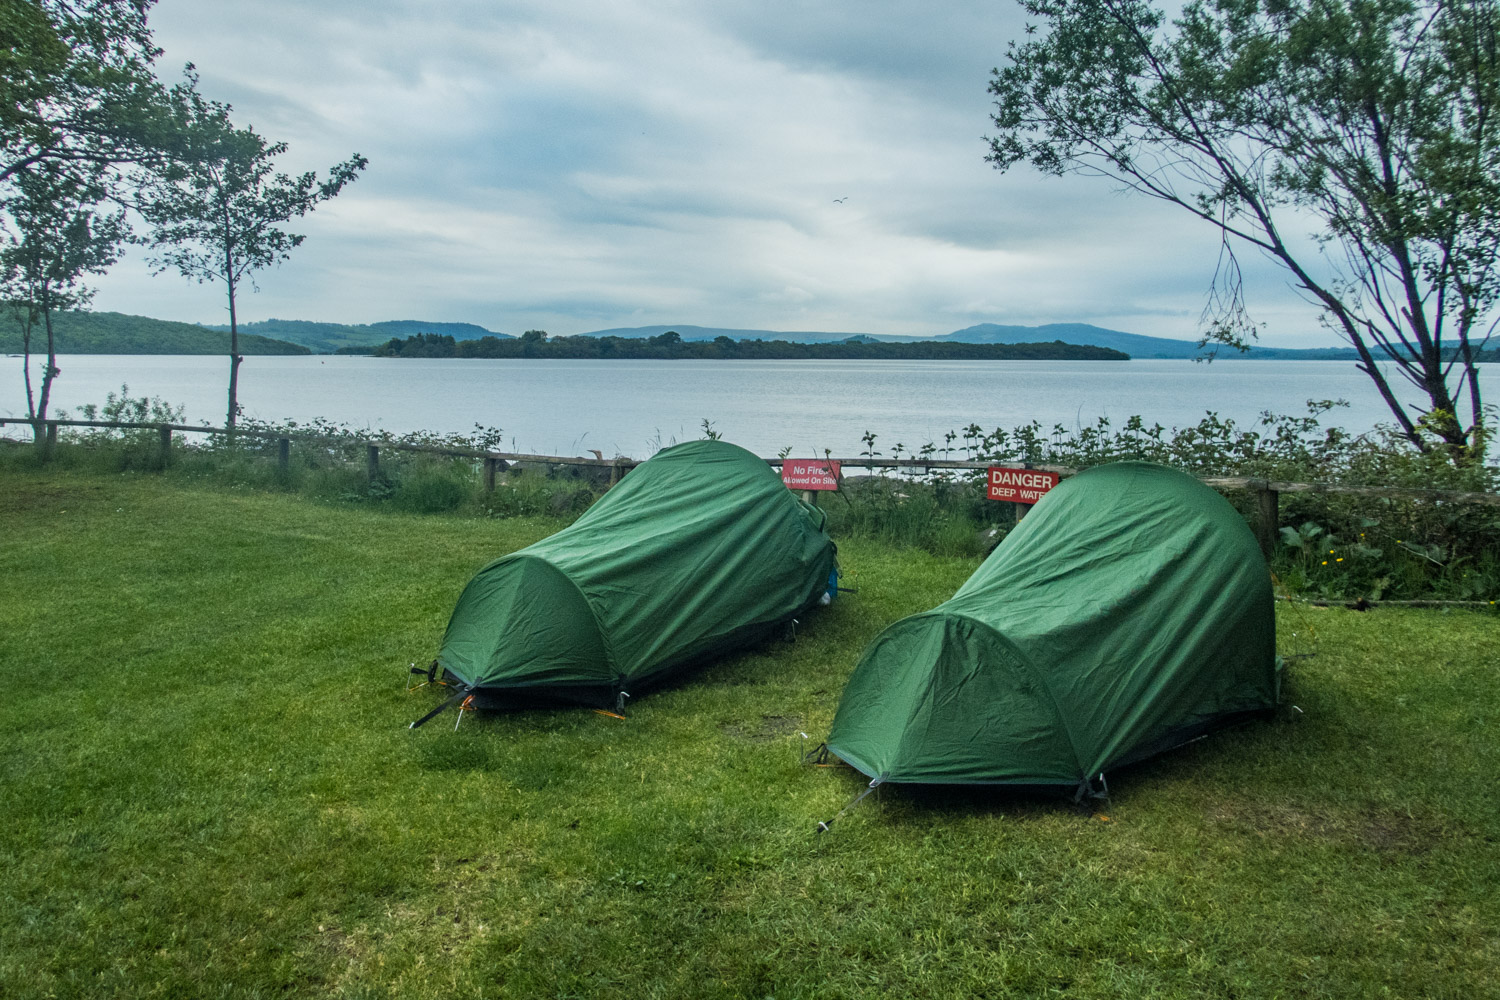 After nearly 22 miles, we could lie down and relax at Milarrochy Campsite.